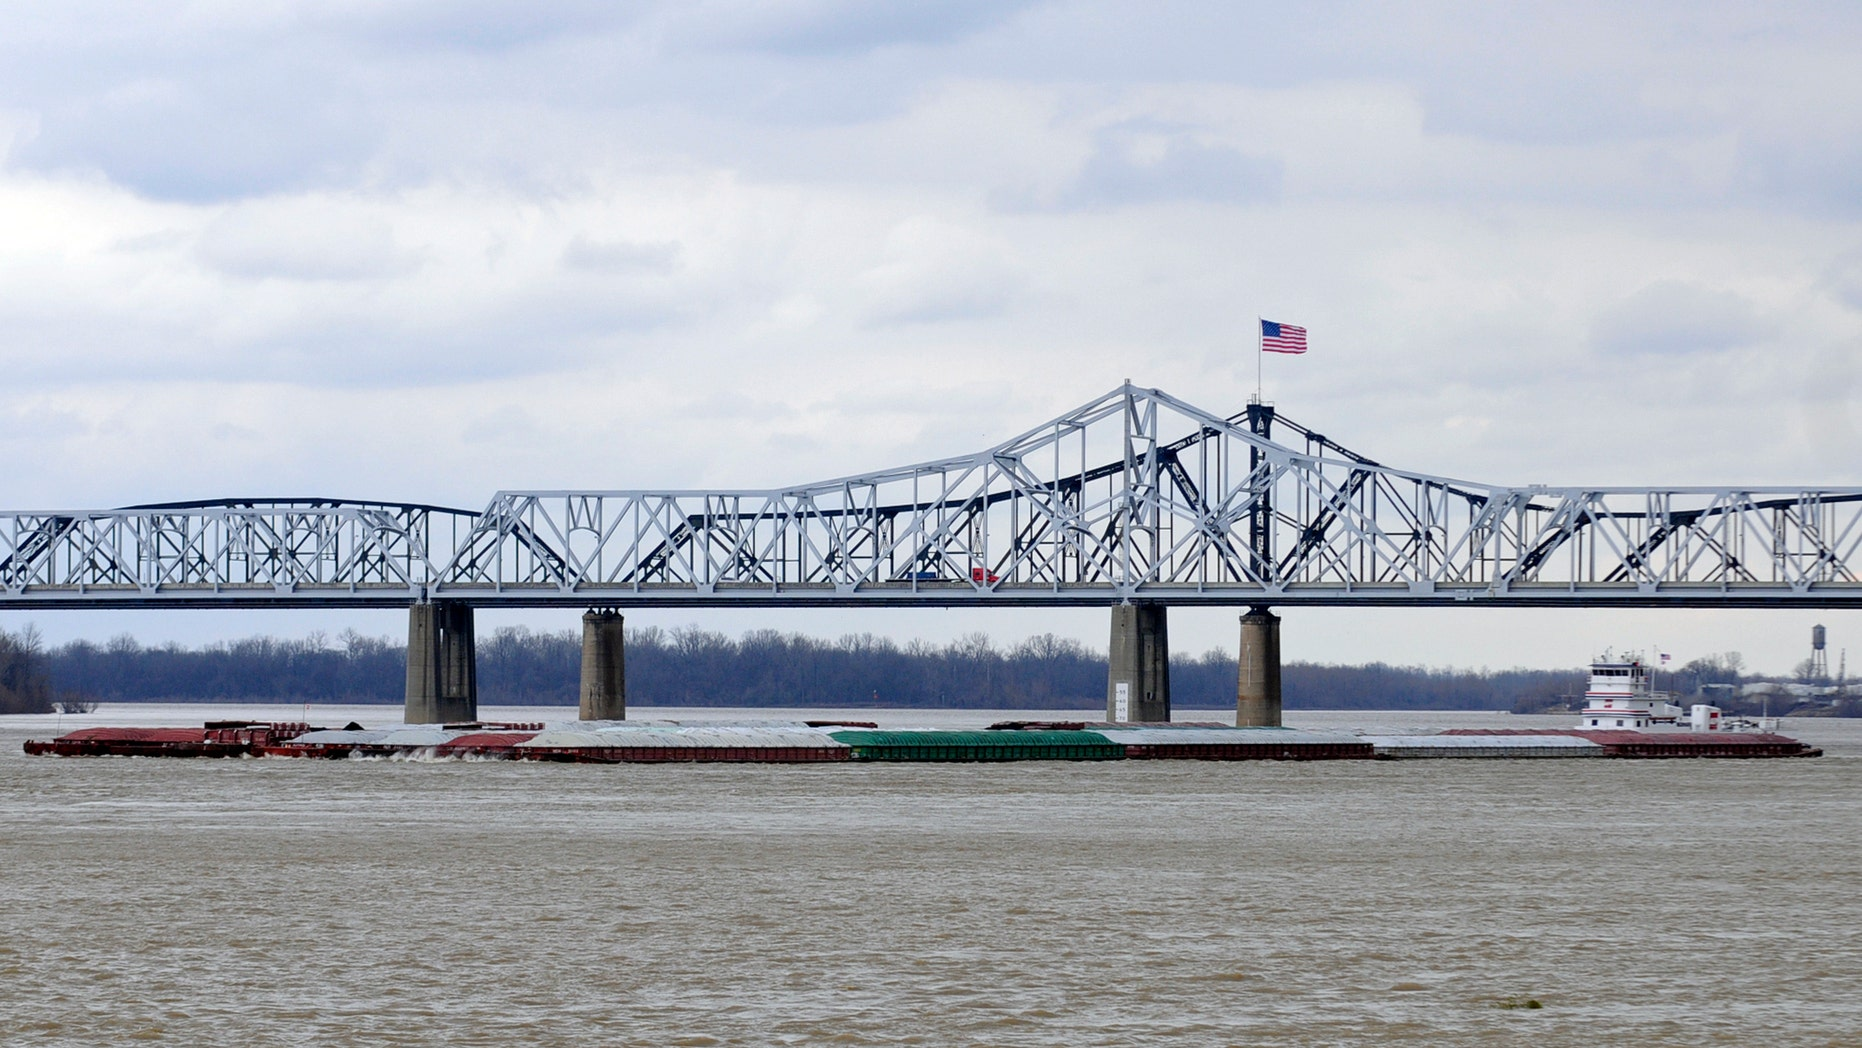 Jan. 30, 2013: The towboat Harold B. Dodd pilots south on the Mississippi River as vehicles cross the Interstate 20 bridge in Vicksburg, Miss.